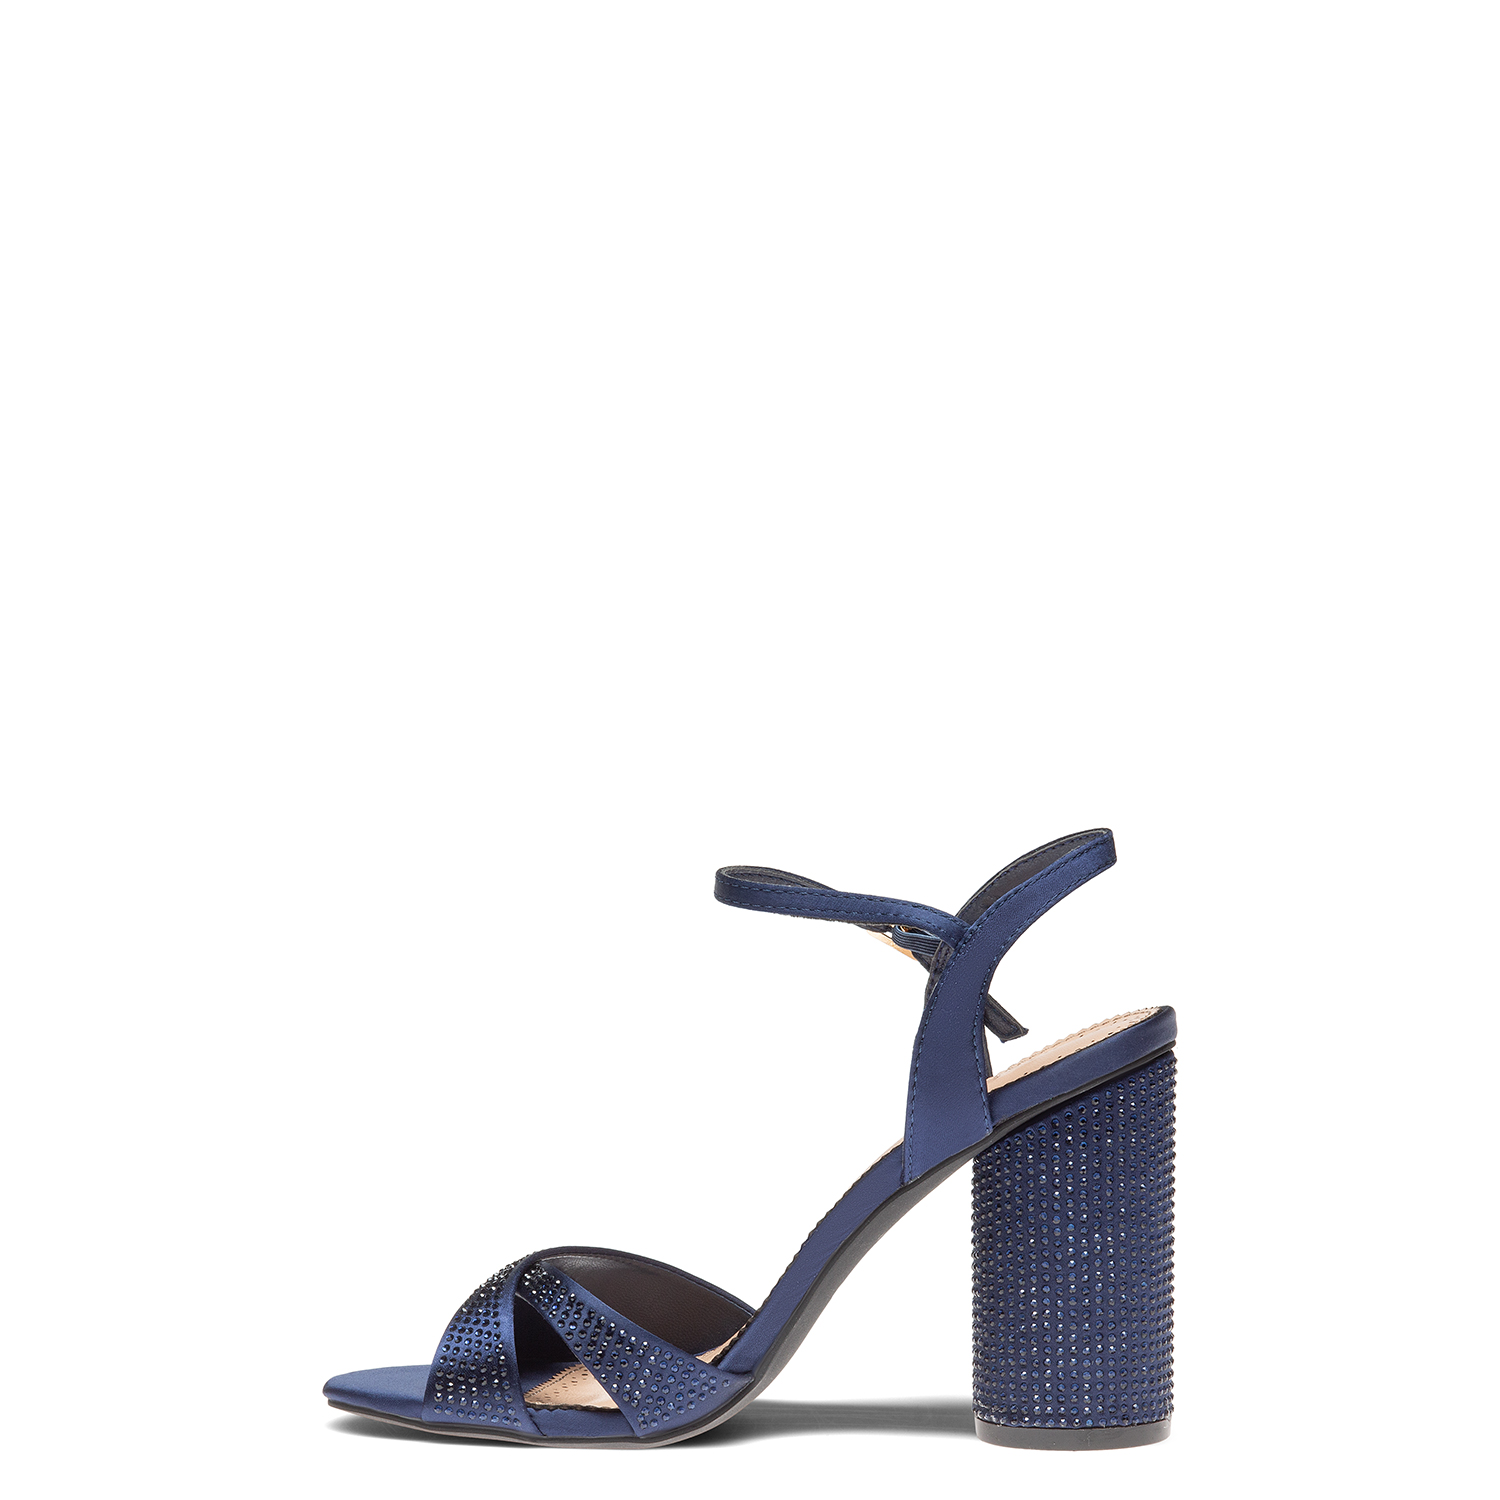 Women's sandals PAZOLINI KH-X6779-6